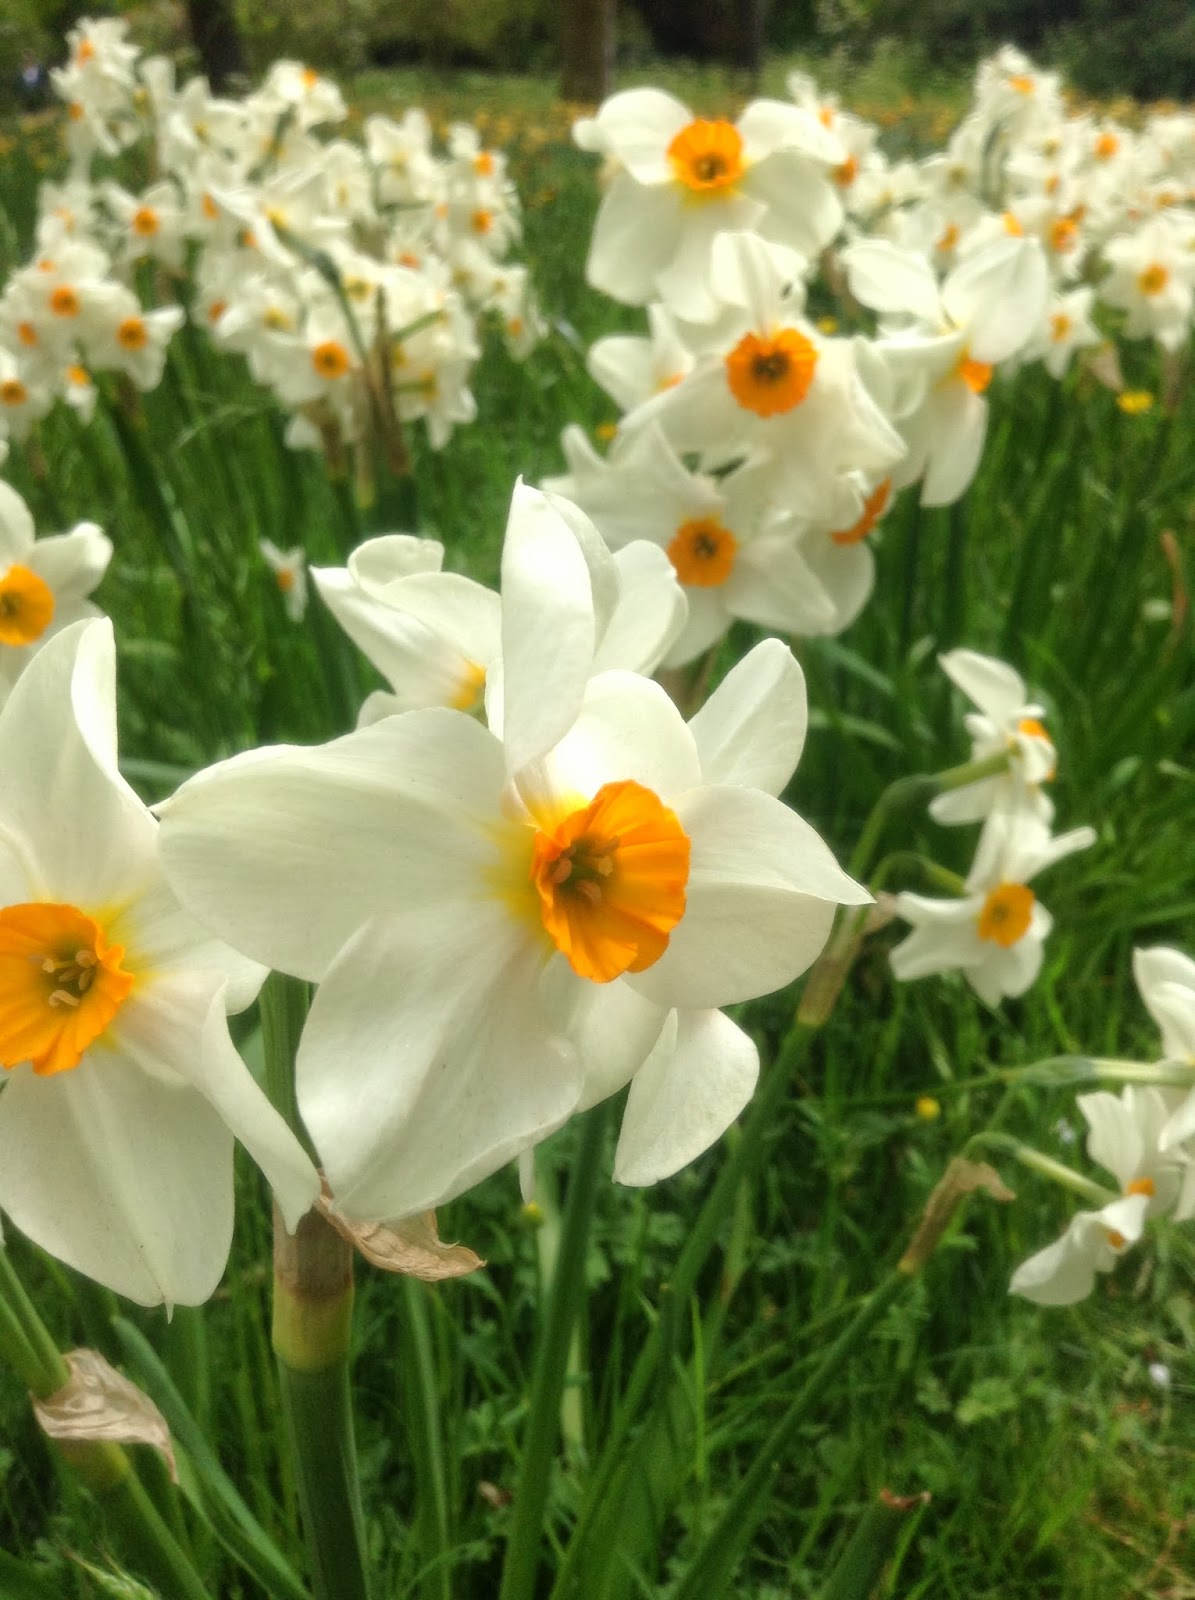 White daffodils in the Wilderness, Hampton Court Gardens, Photo from Mercurelli's Garden Design